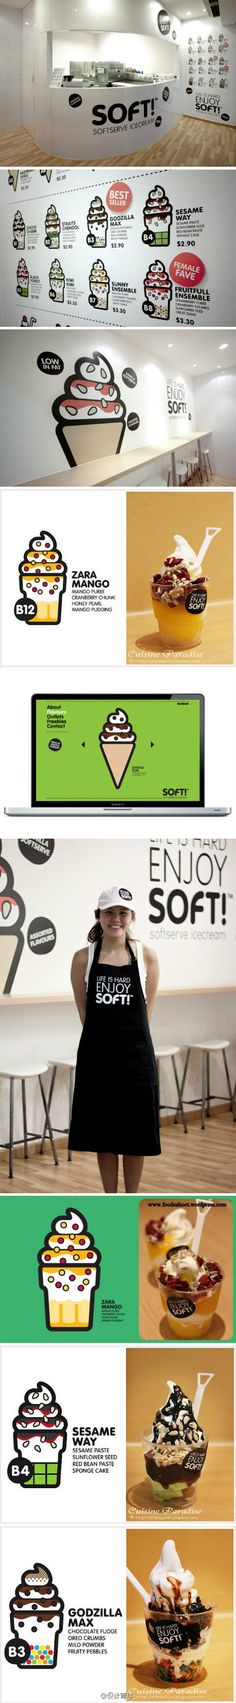 Soft! Nice branding / pack / www suite.  ihnynotes: like the cartoony cones a lot